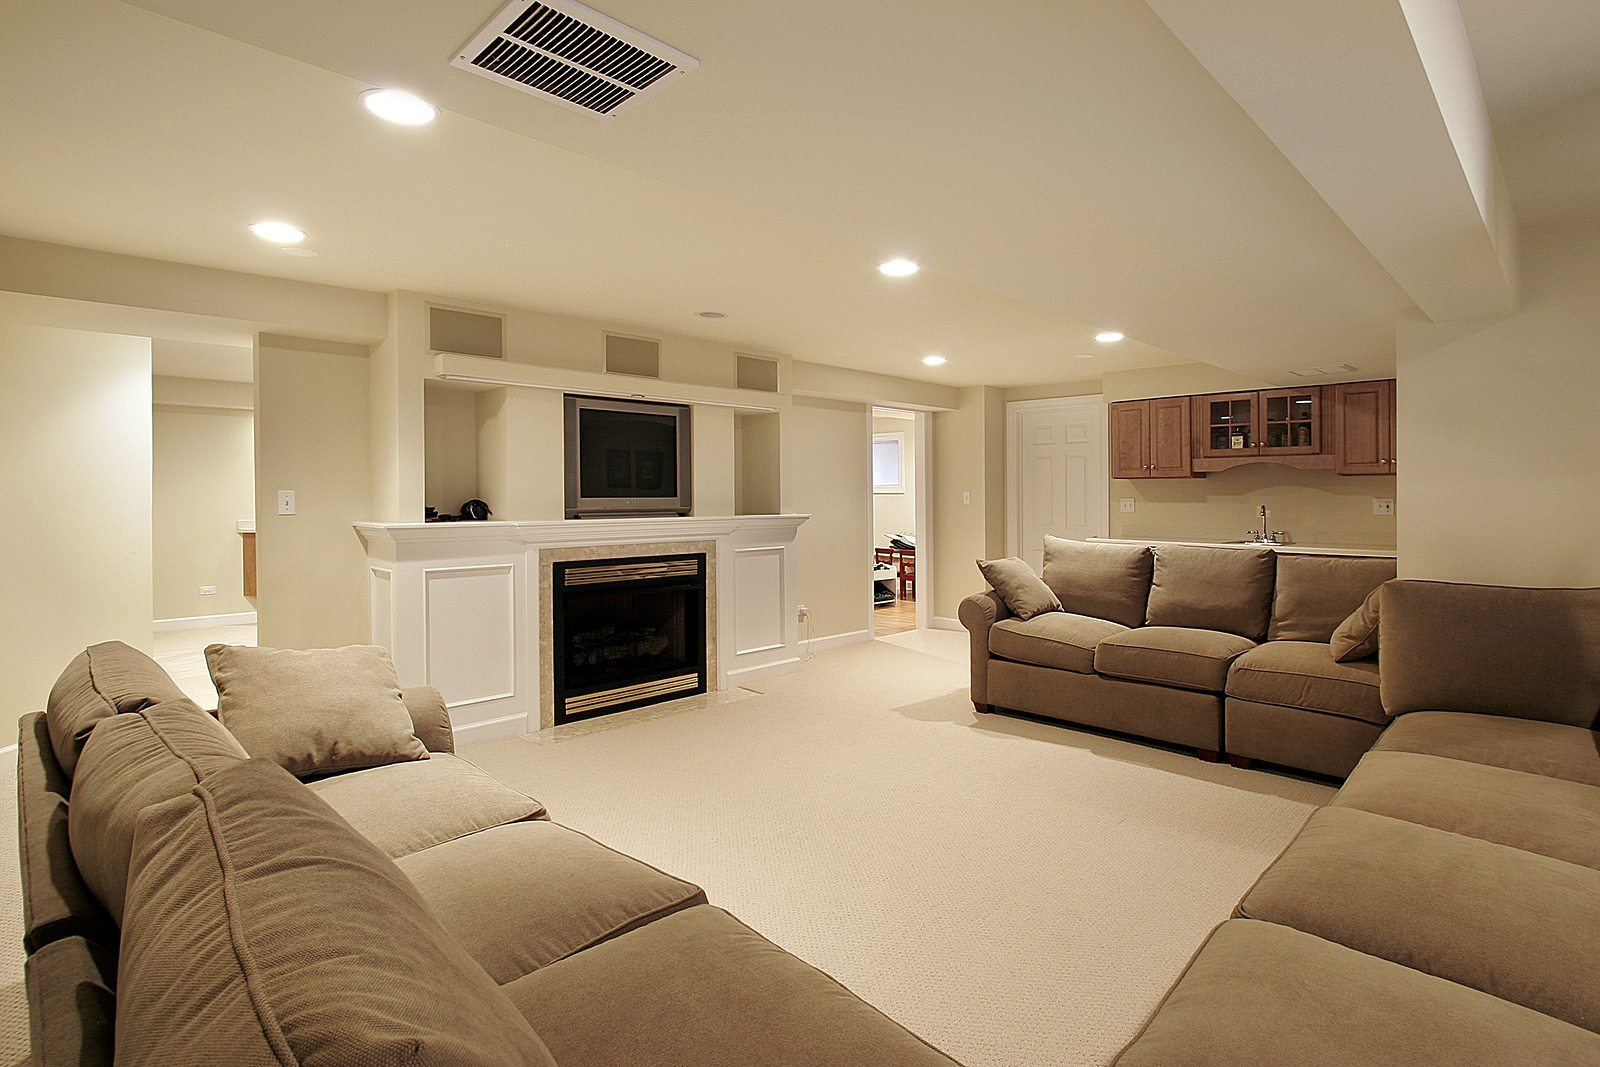 Luxury Home Basement in luxury home with white fireplace